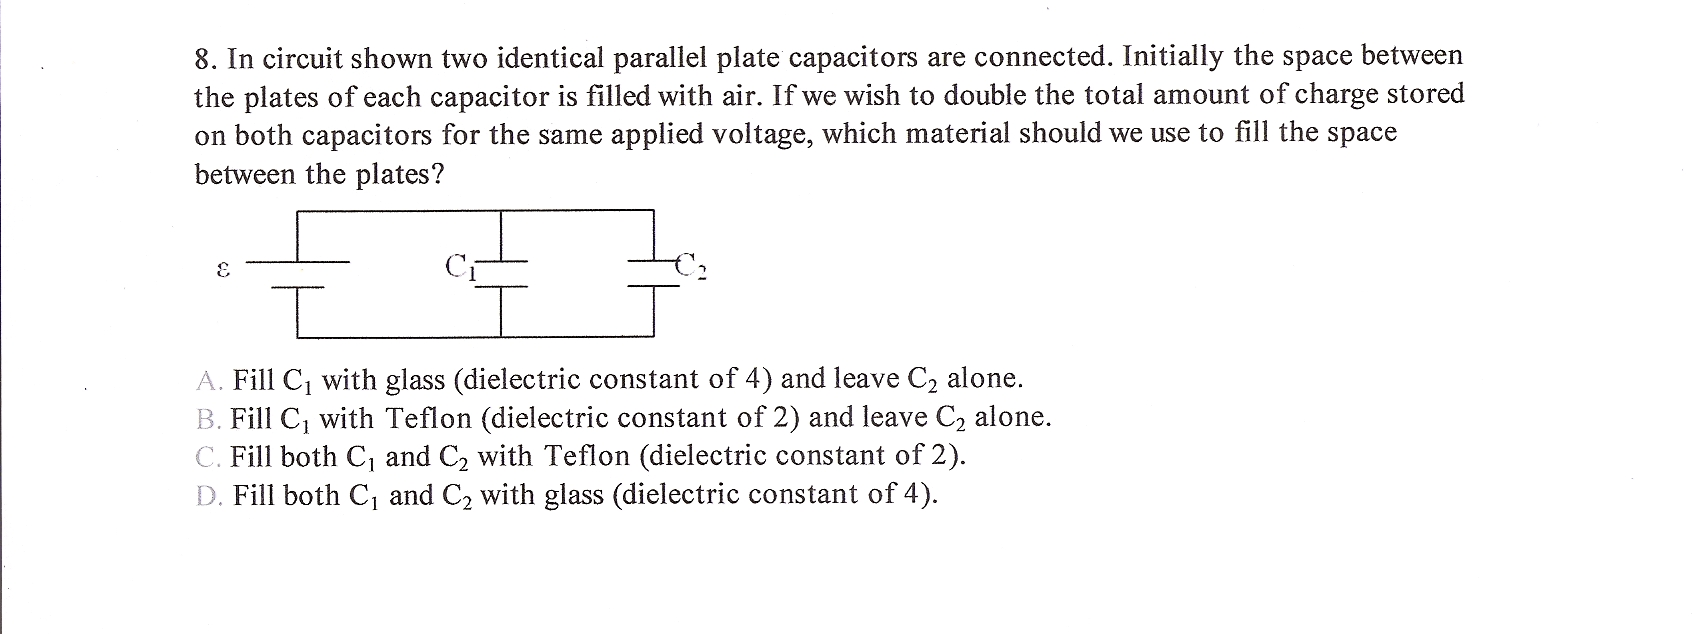 In circuit shown two identical parallel plate capa